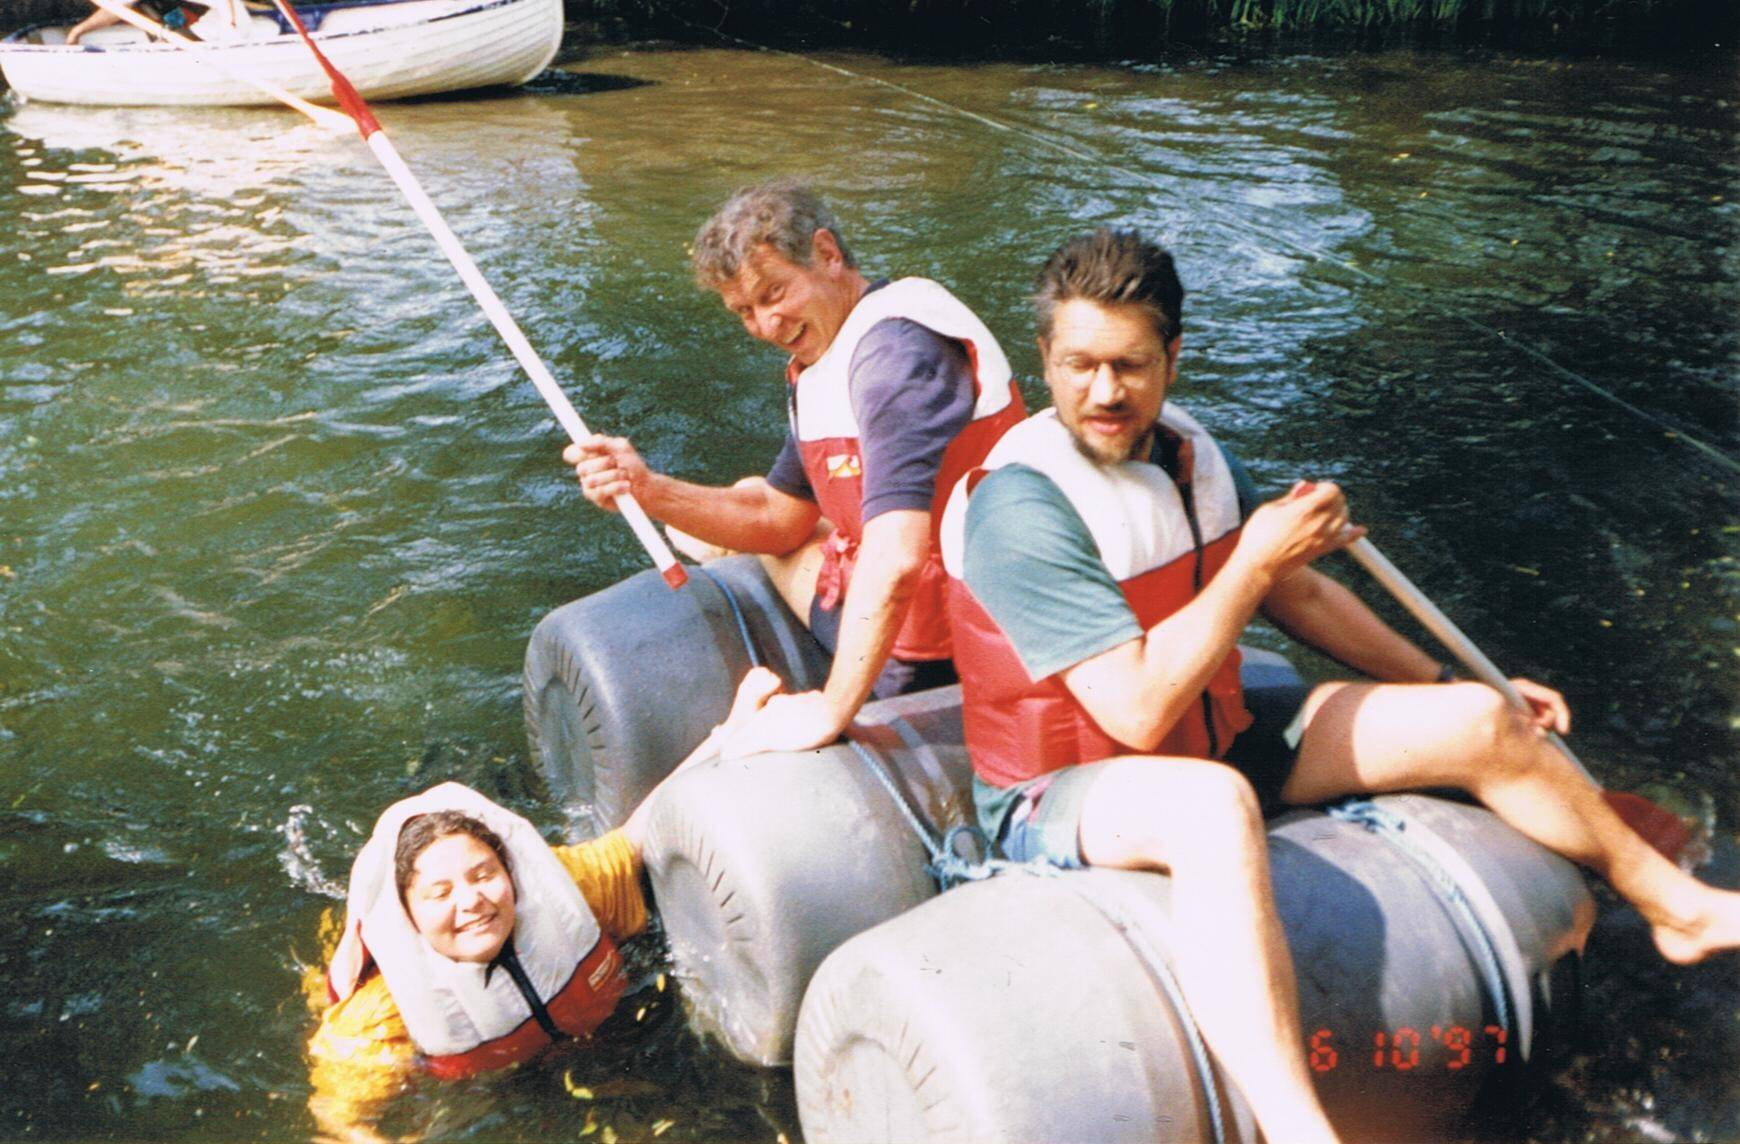 With Andrew Auster, Suffolk, UK, 1997